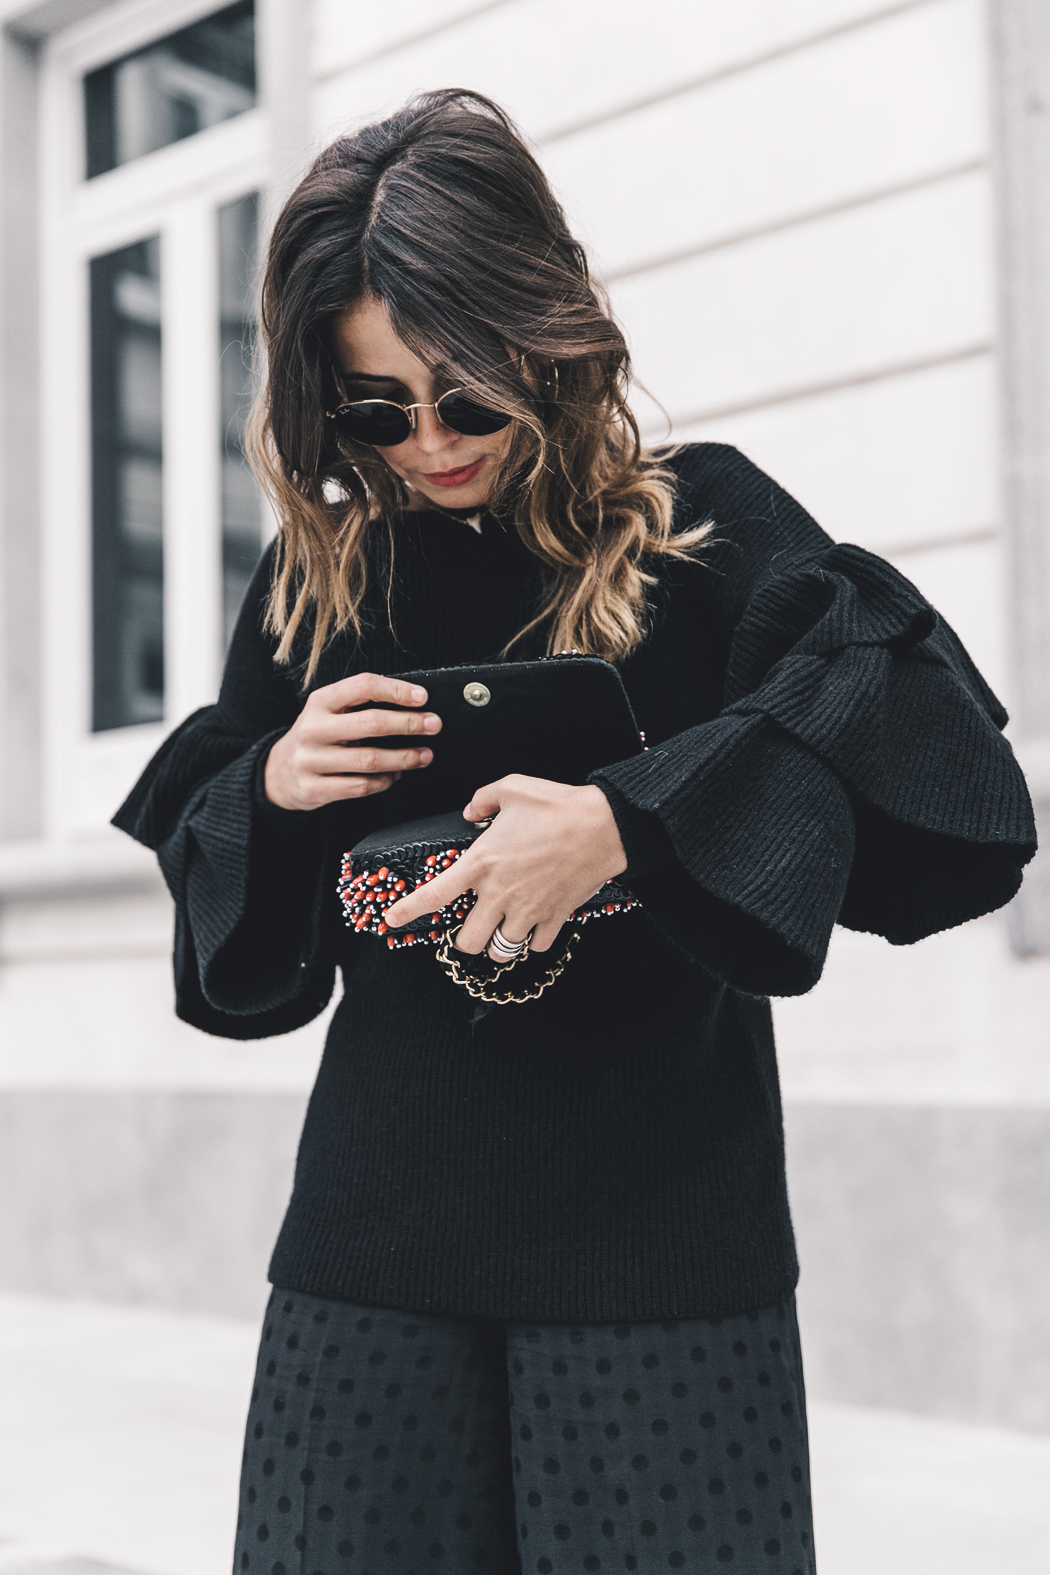 Ruffled_Sleeves_Jumper-Black_Culottes-Dune_Sandals-Beaded_Bag-Outfit-Collage_Vintage-Street_Style-37